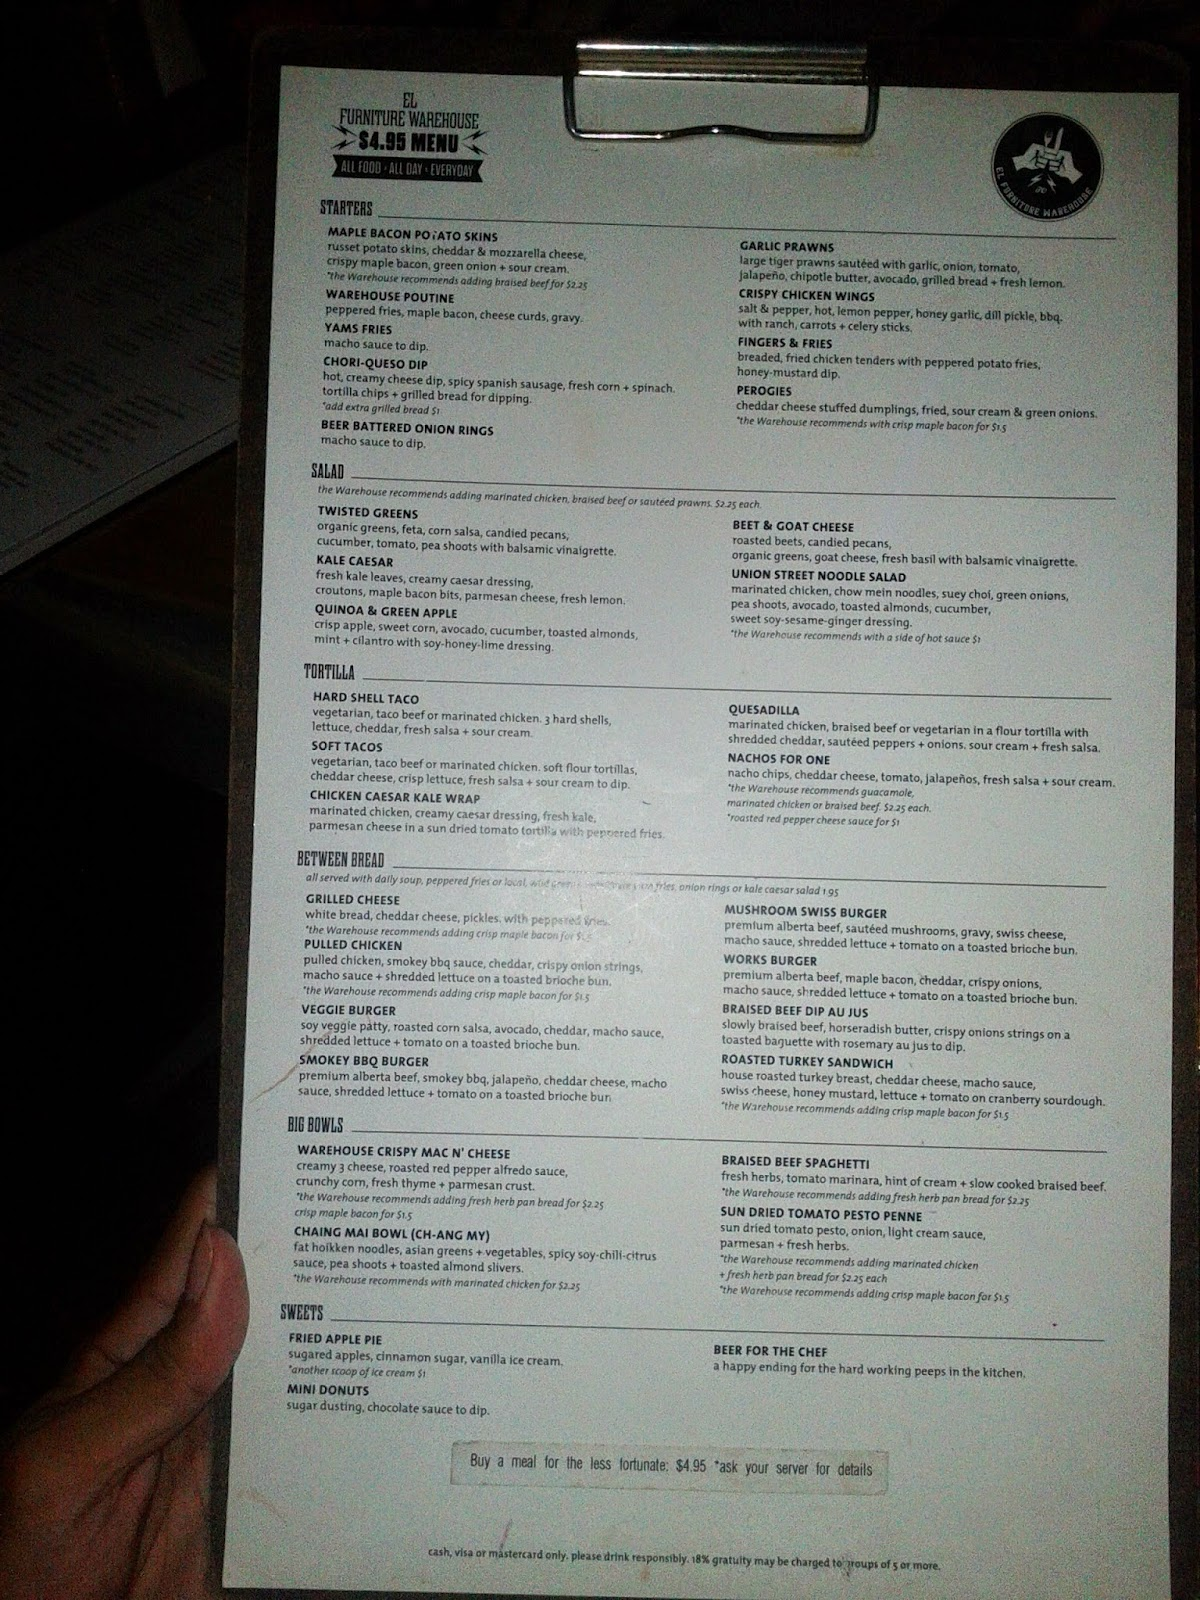 Travel toronto now el furniture warehouse menu best for El furniture warehouse toronto menu